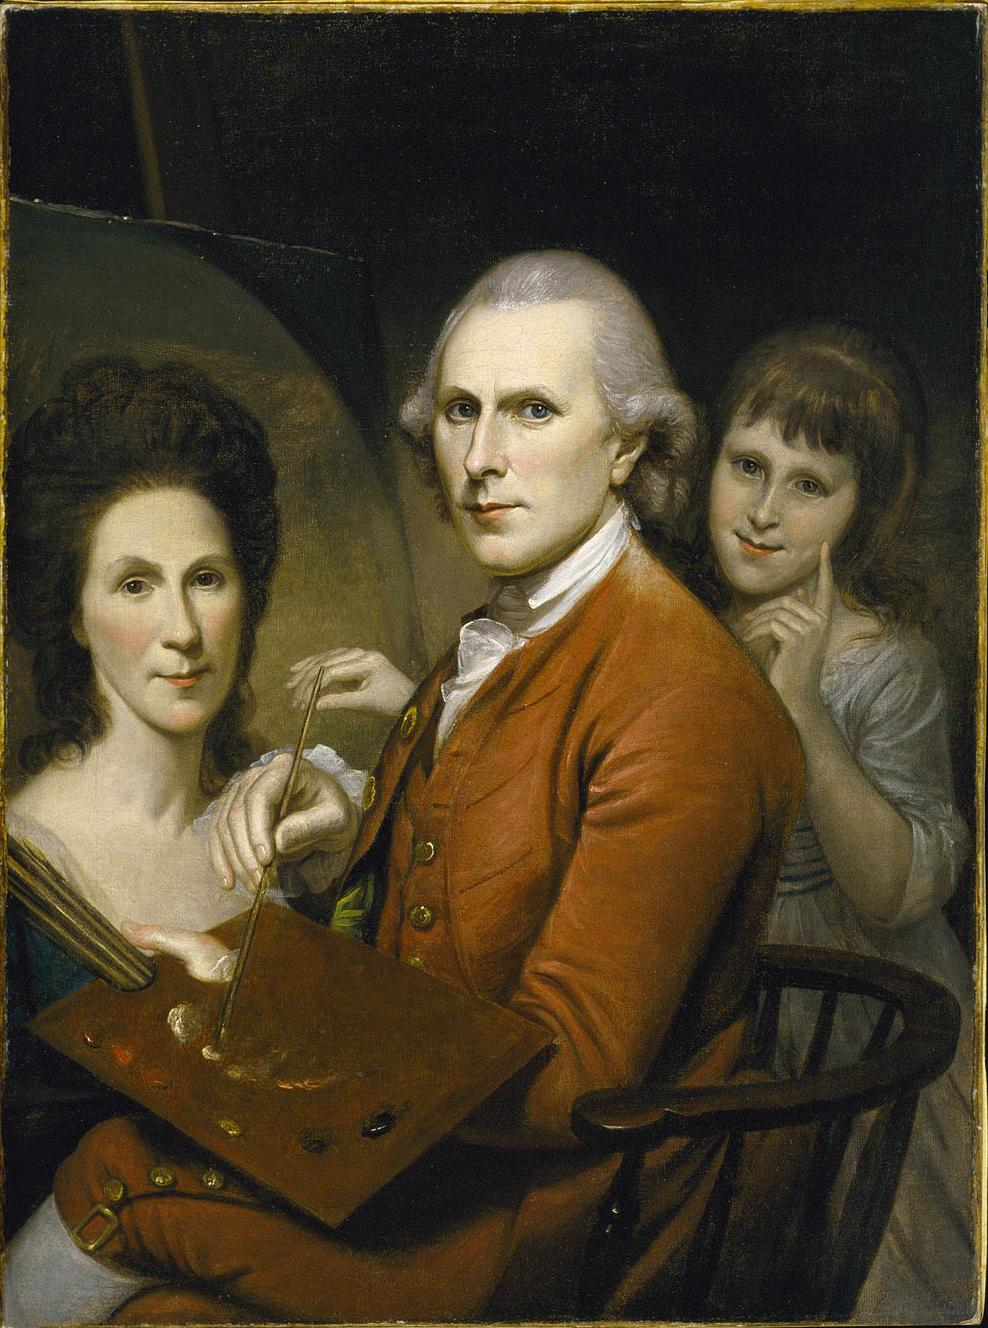 Self-Portrait with Angelica and Portrait of Rachel Charles Willson Peale c.1782-1785, The Museum of Fine Arts, Houston